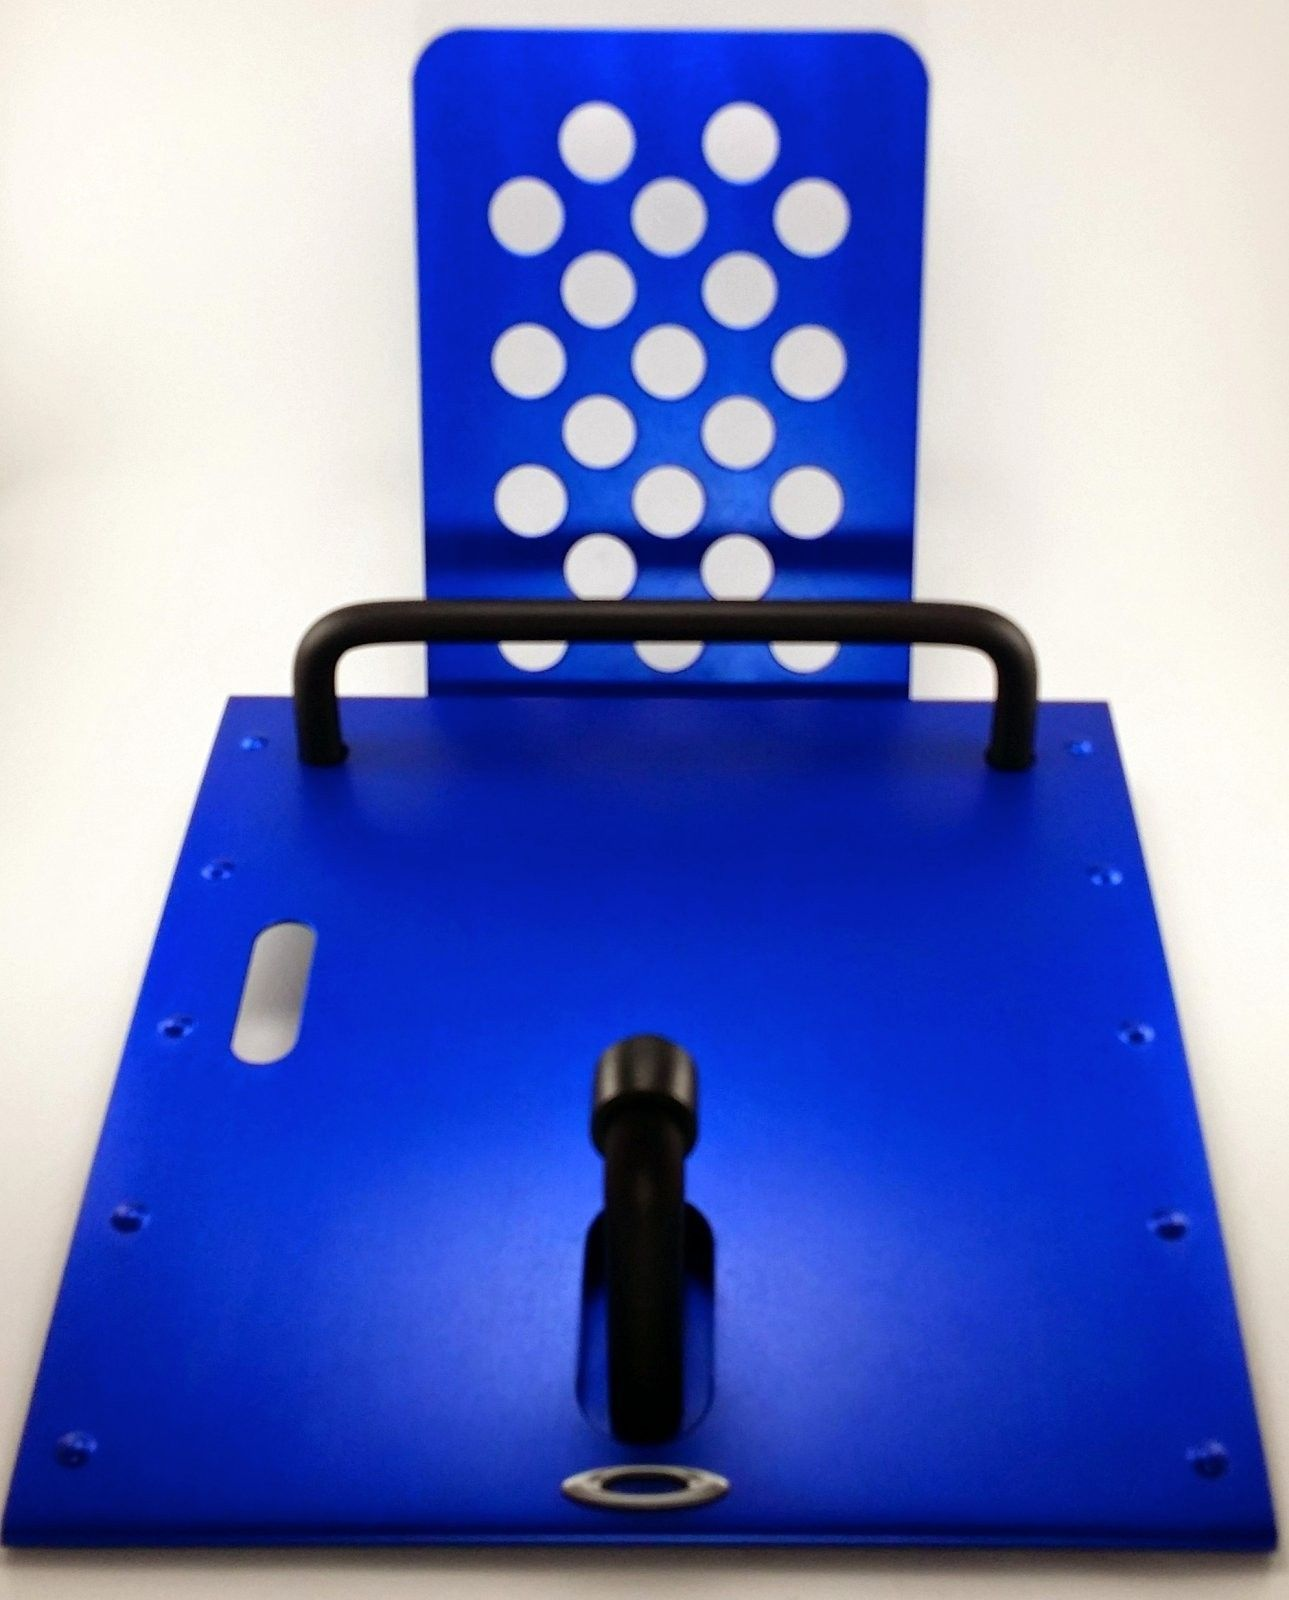 $OLD - Custom Blue Anodized Thump *Price Dropped* - 20140929_203523.jpeg